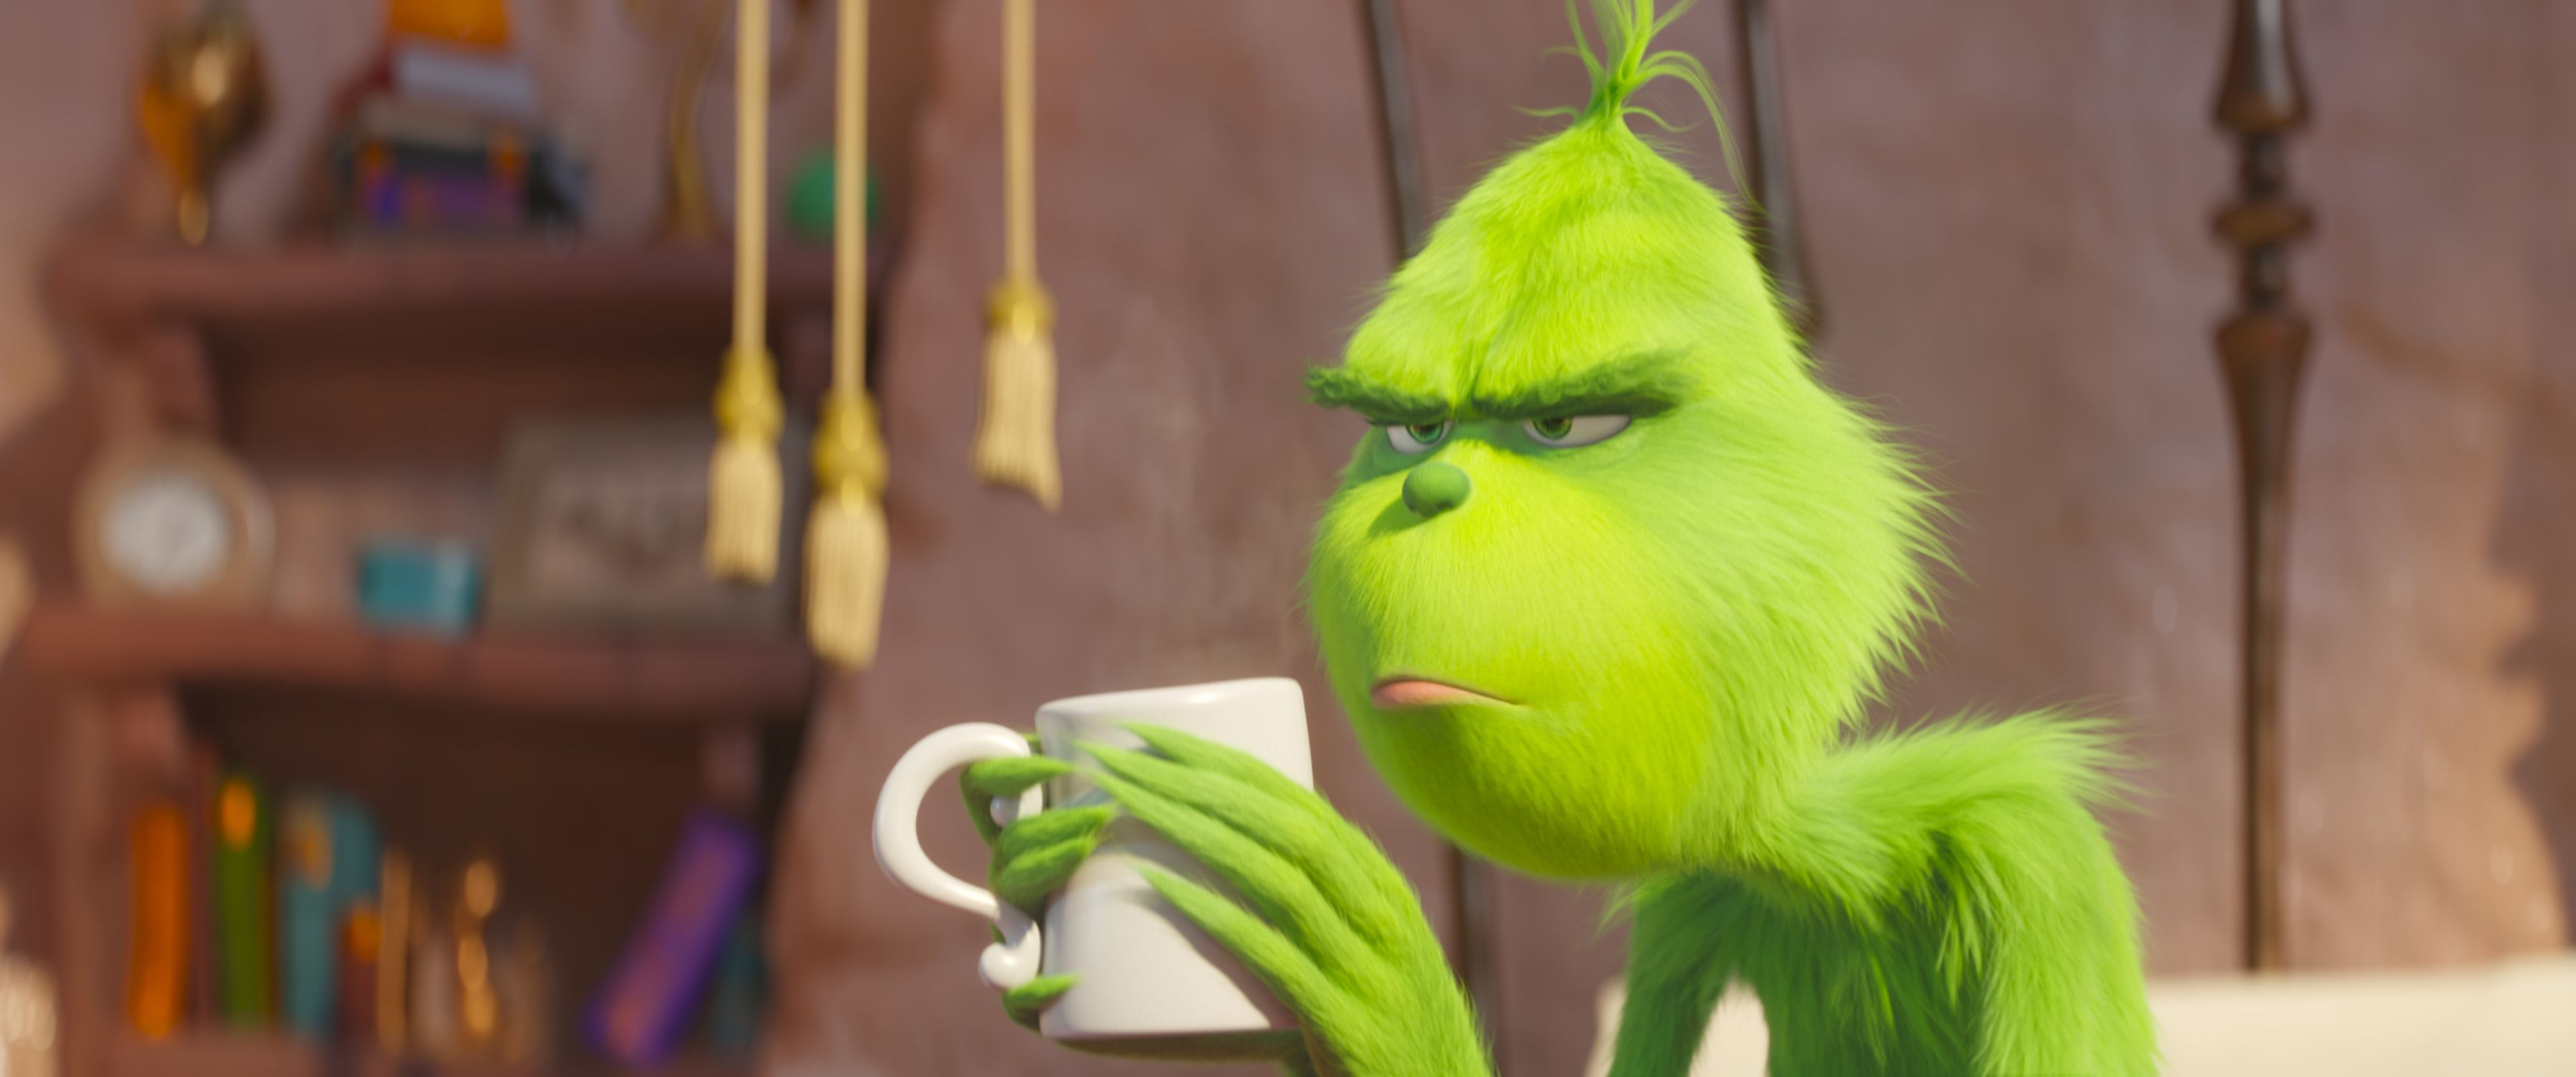 the grinch benedict cumberbatch - 'The Grinch': First Trailer Reveals Benedict Cumberbatch as the Lovable Grump